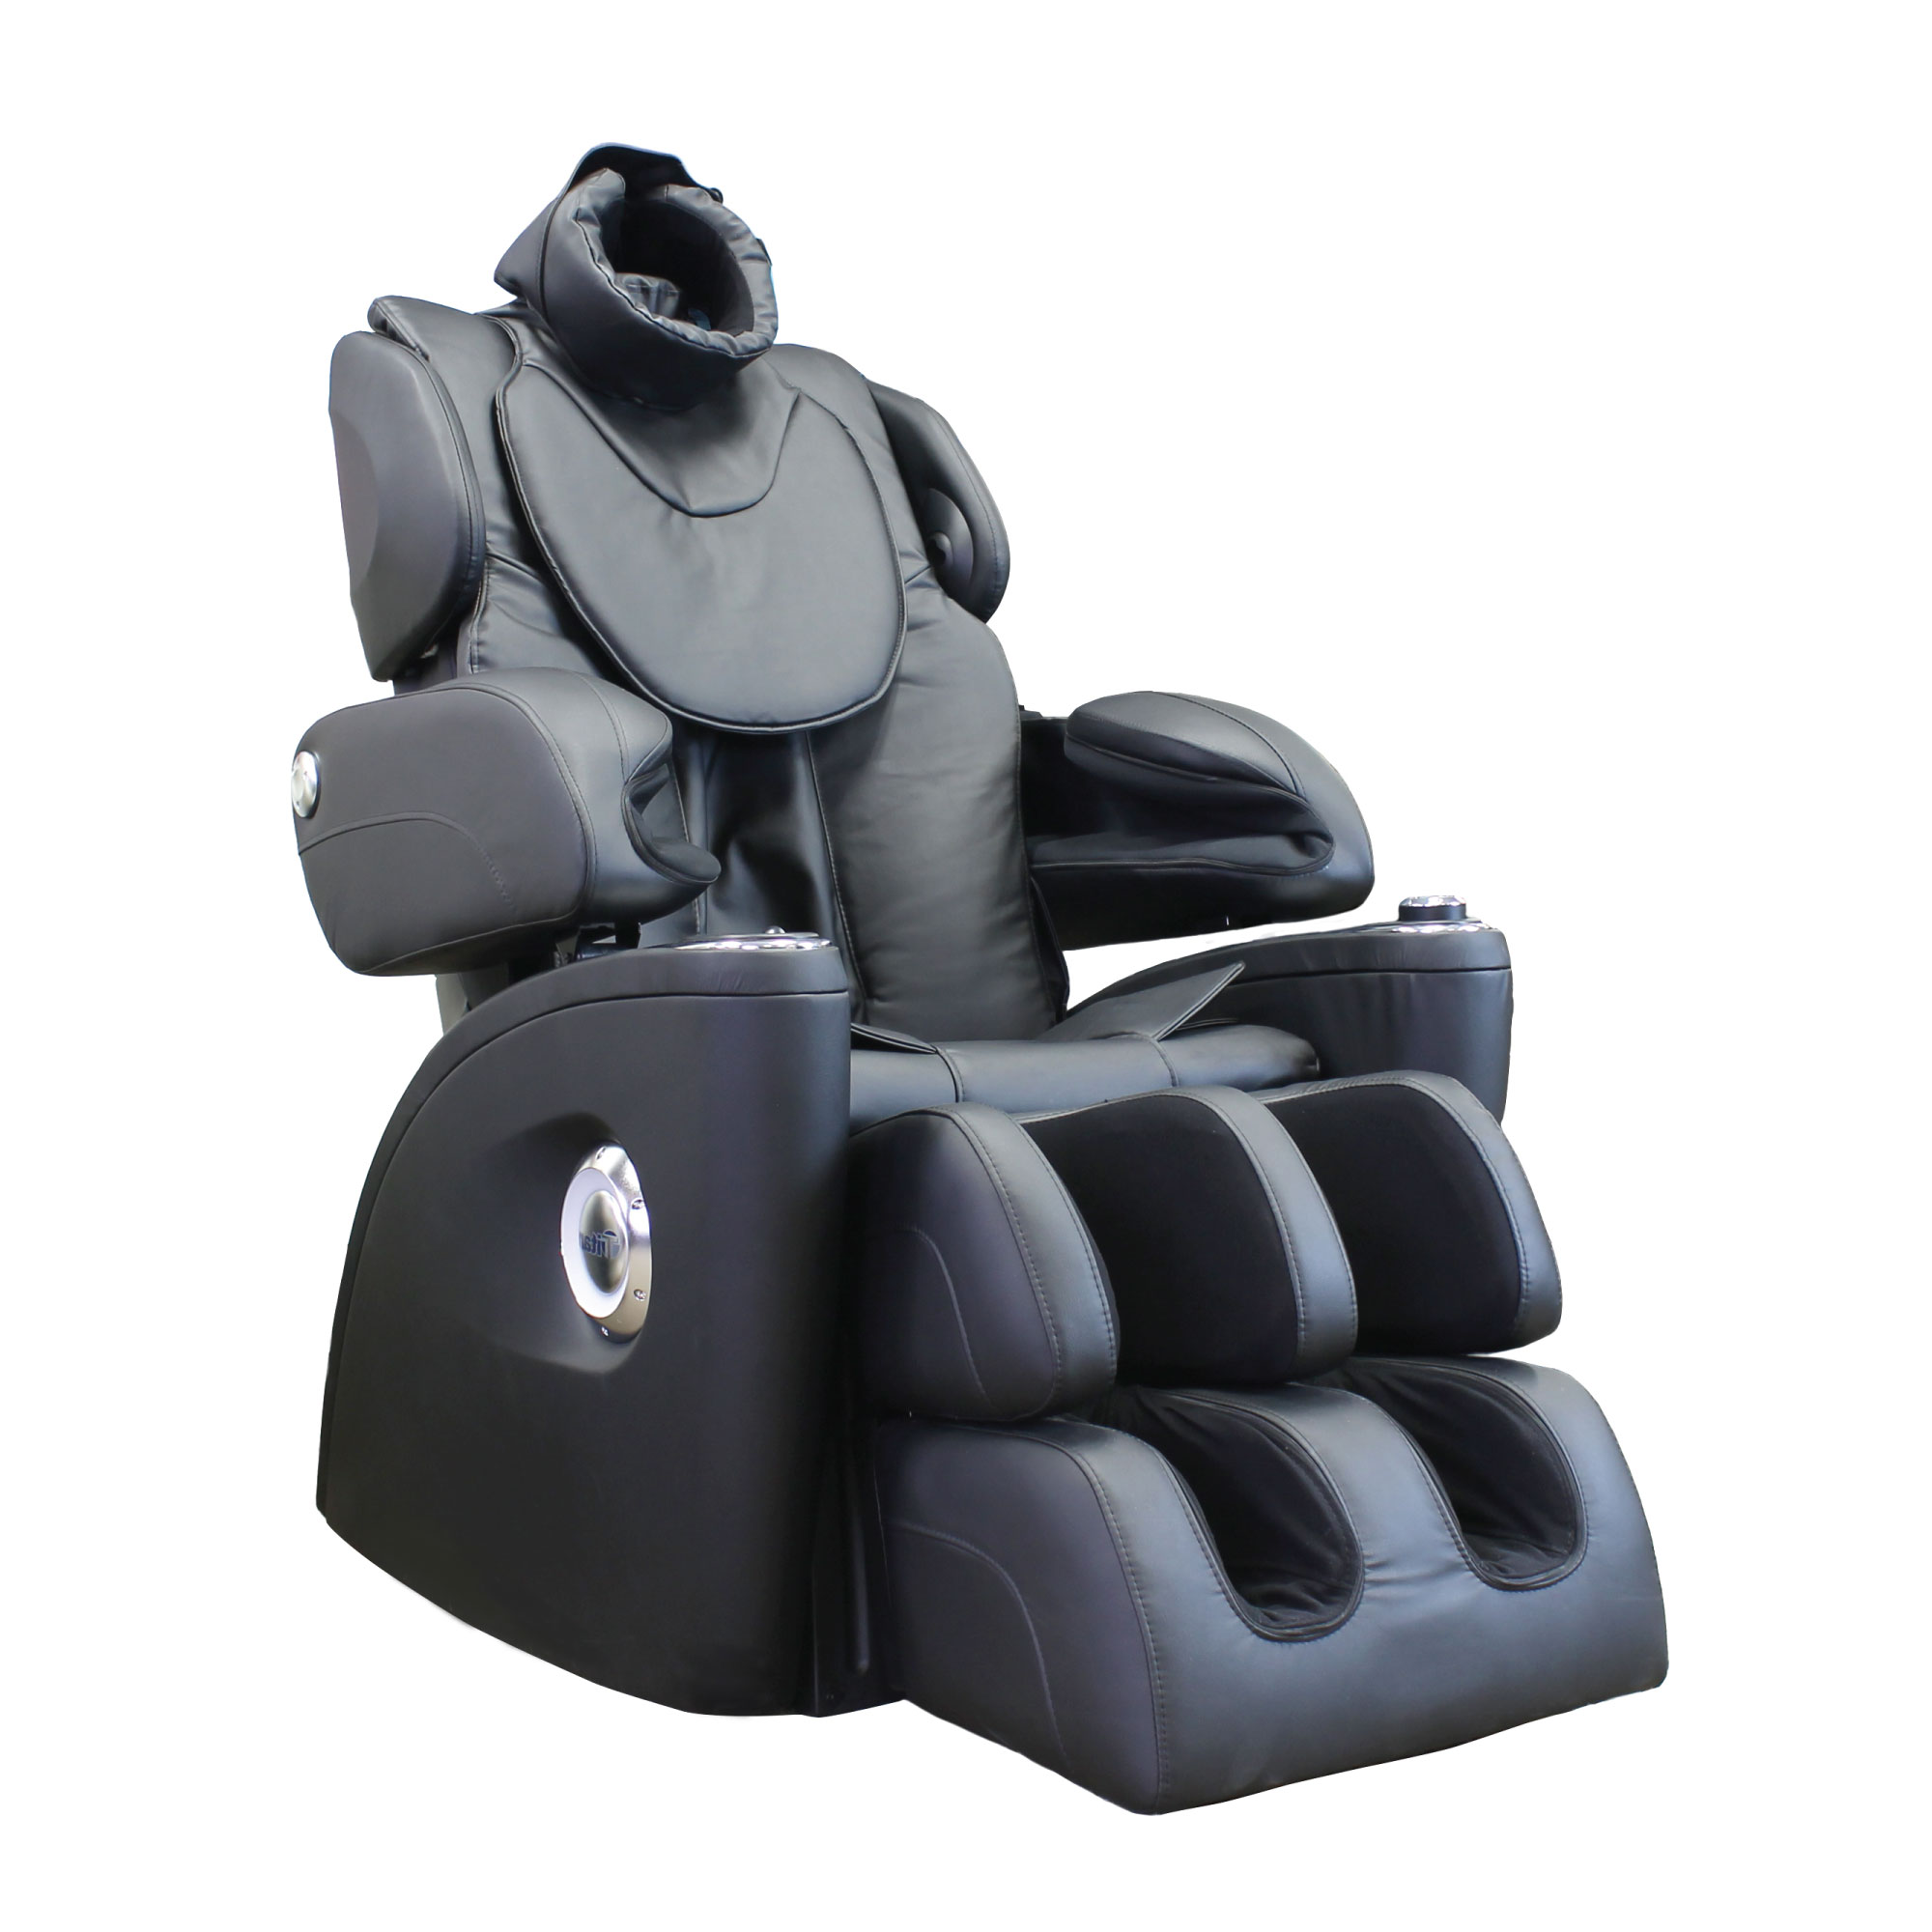 fujita massage chair review adrian pearsall lounge chairs reviews 2017